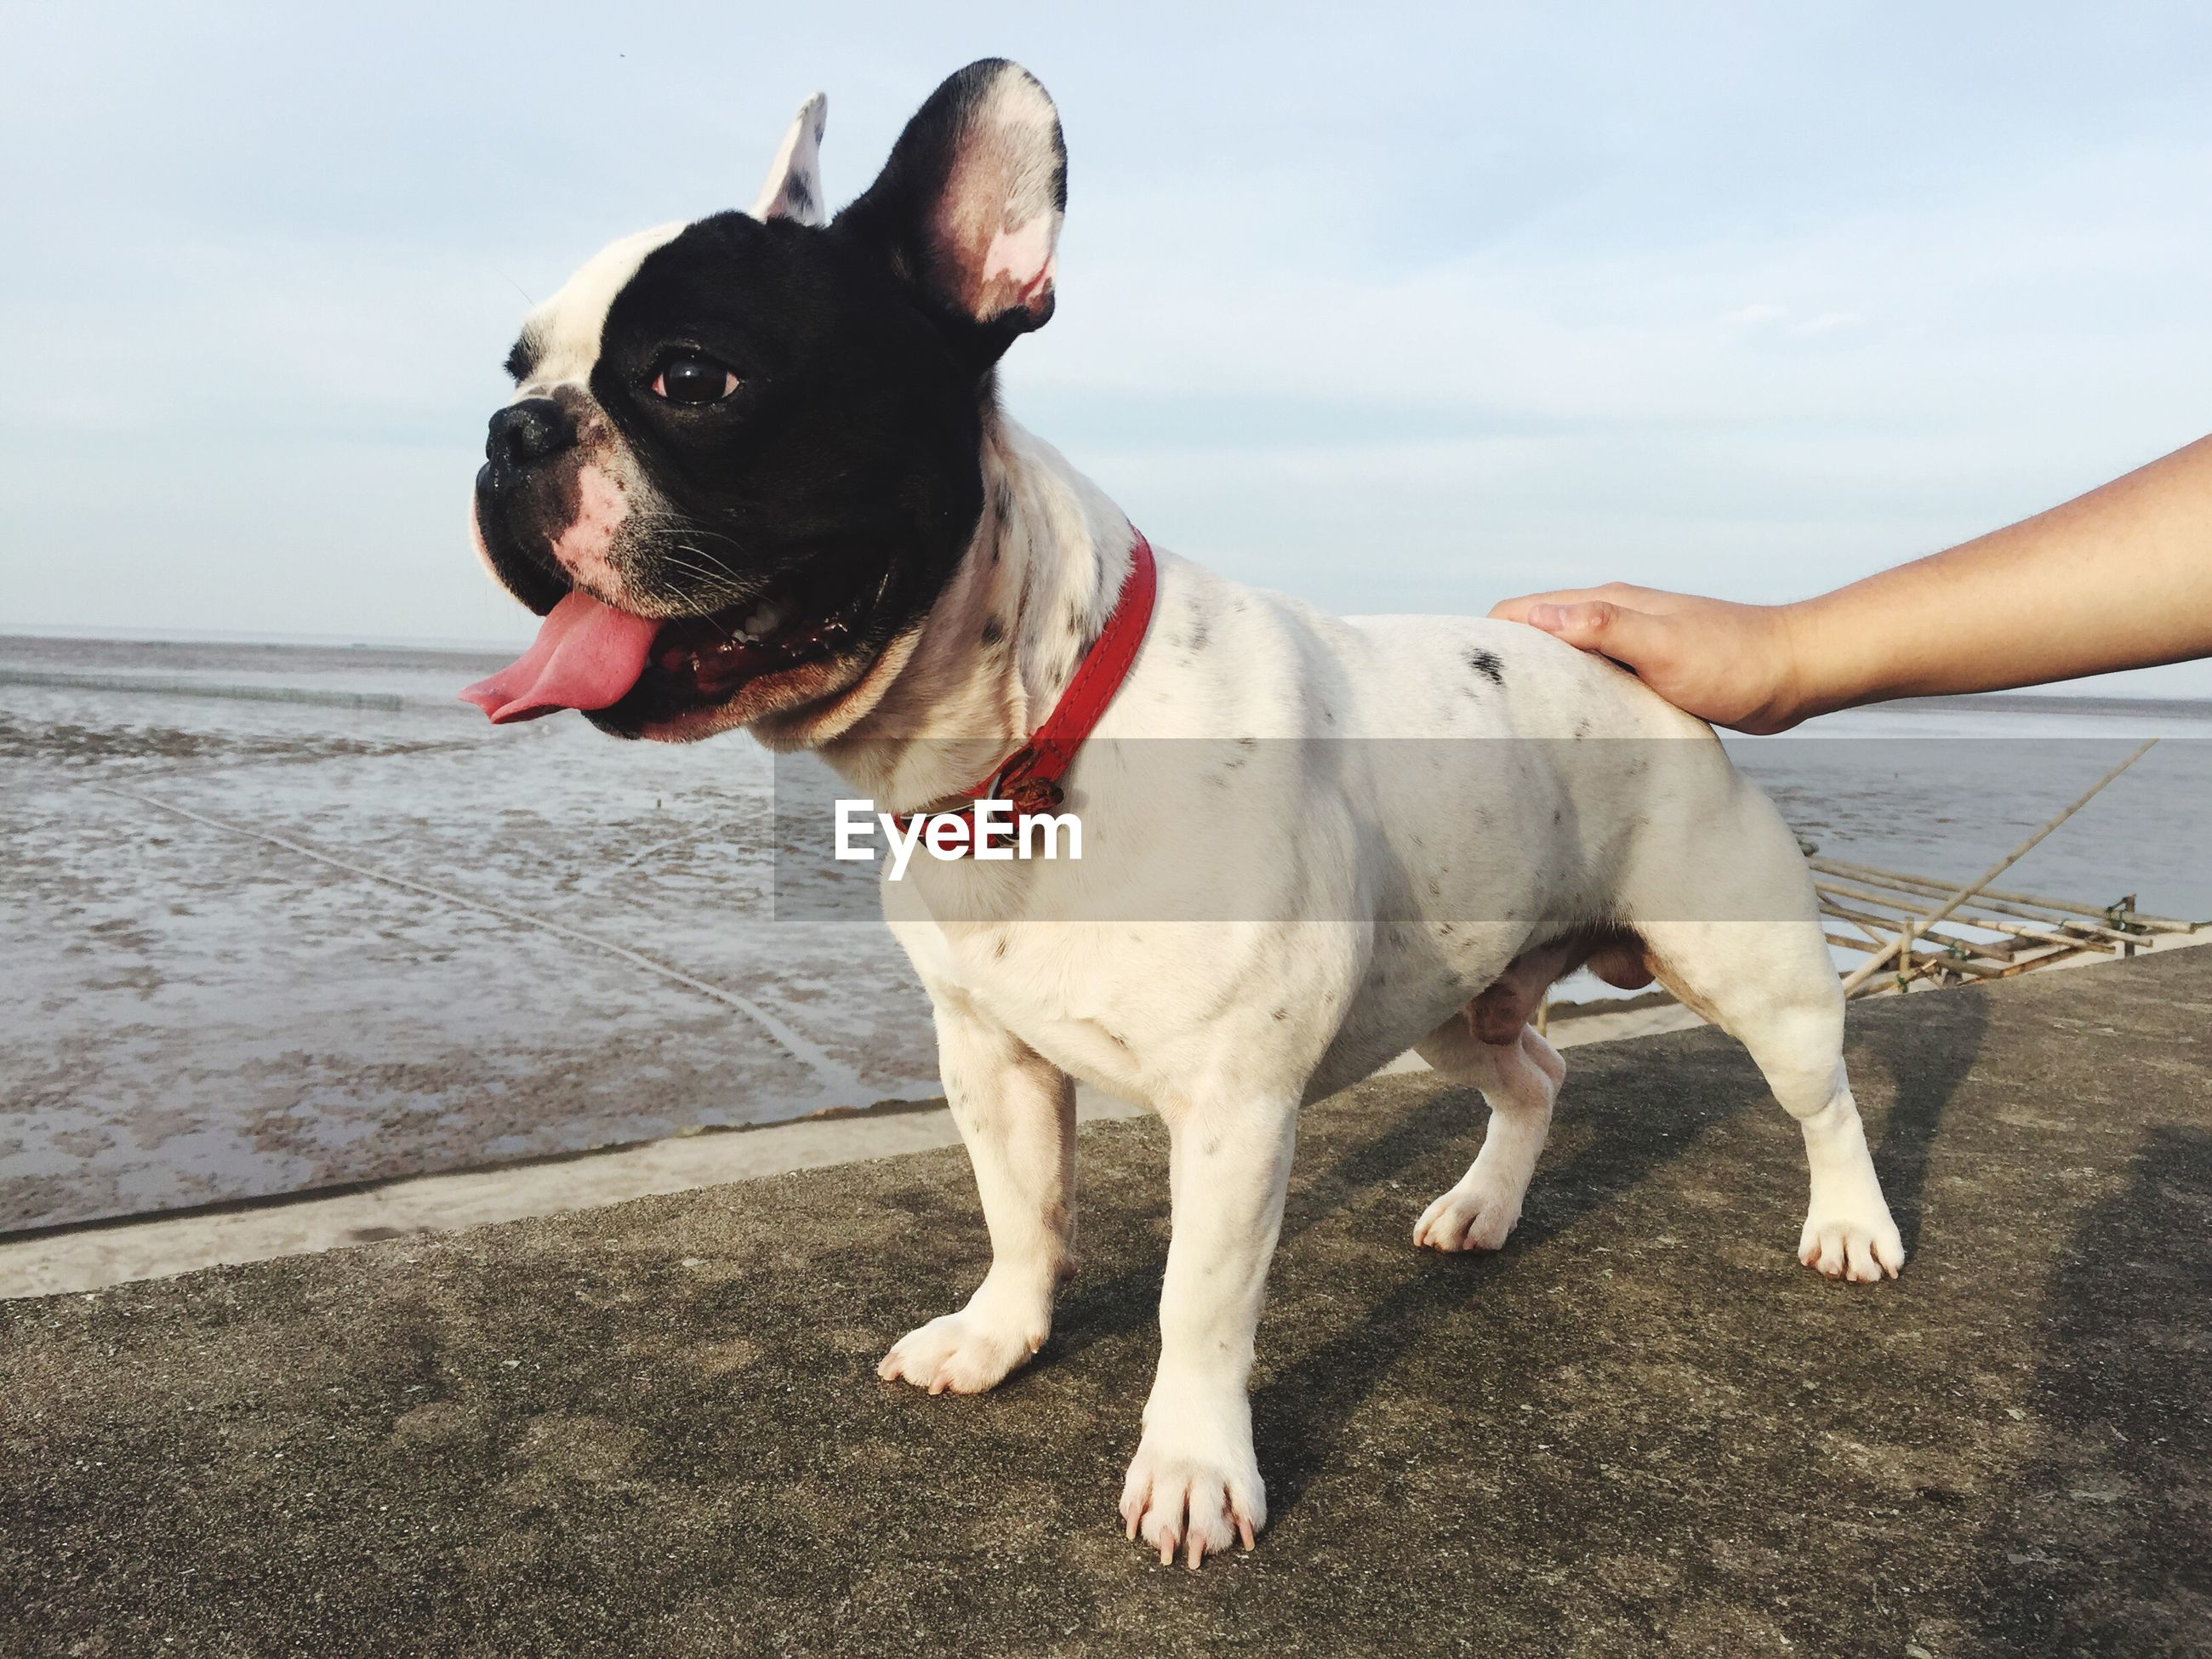 Cropped hand touching french bulldog against beach